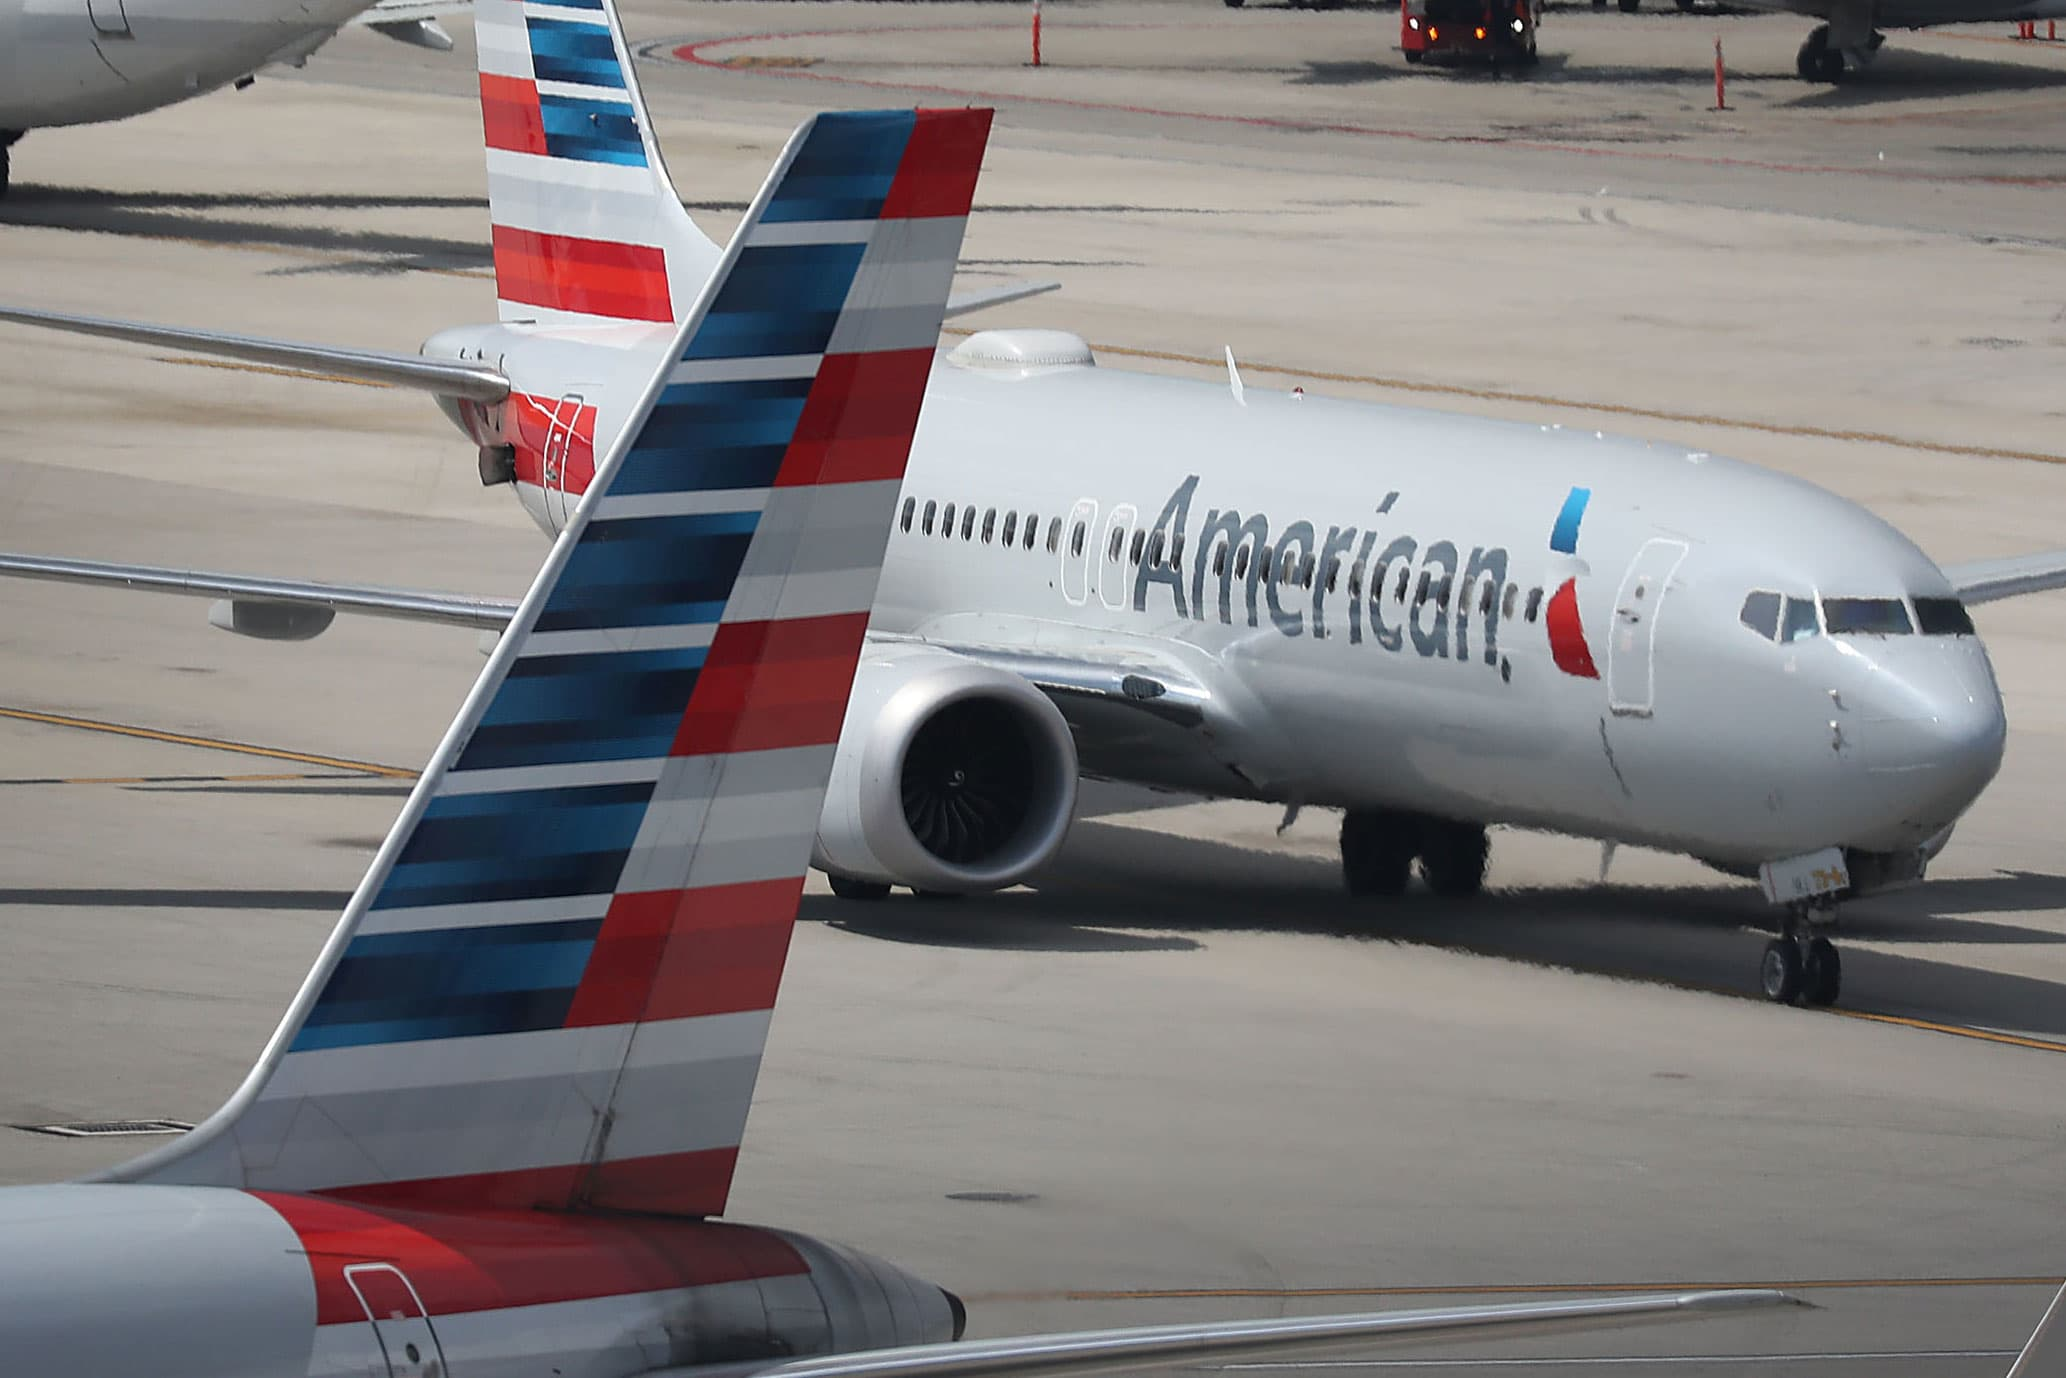 American Airlines CEO says there's an 'absolute fix' for Boeing's 737 Max